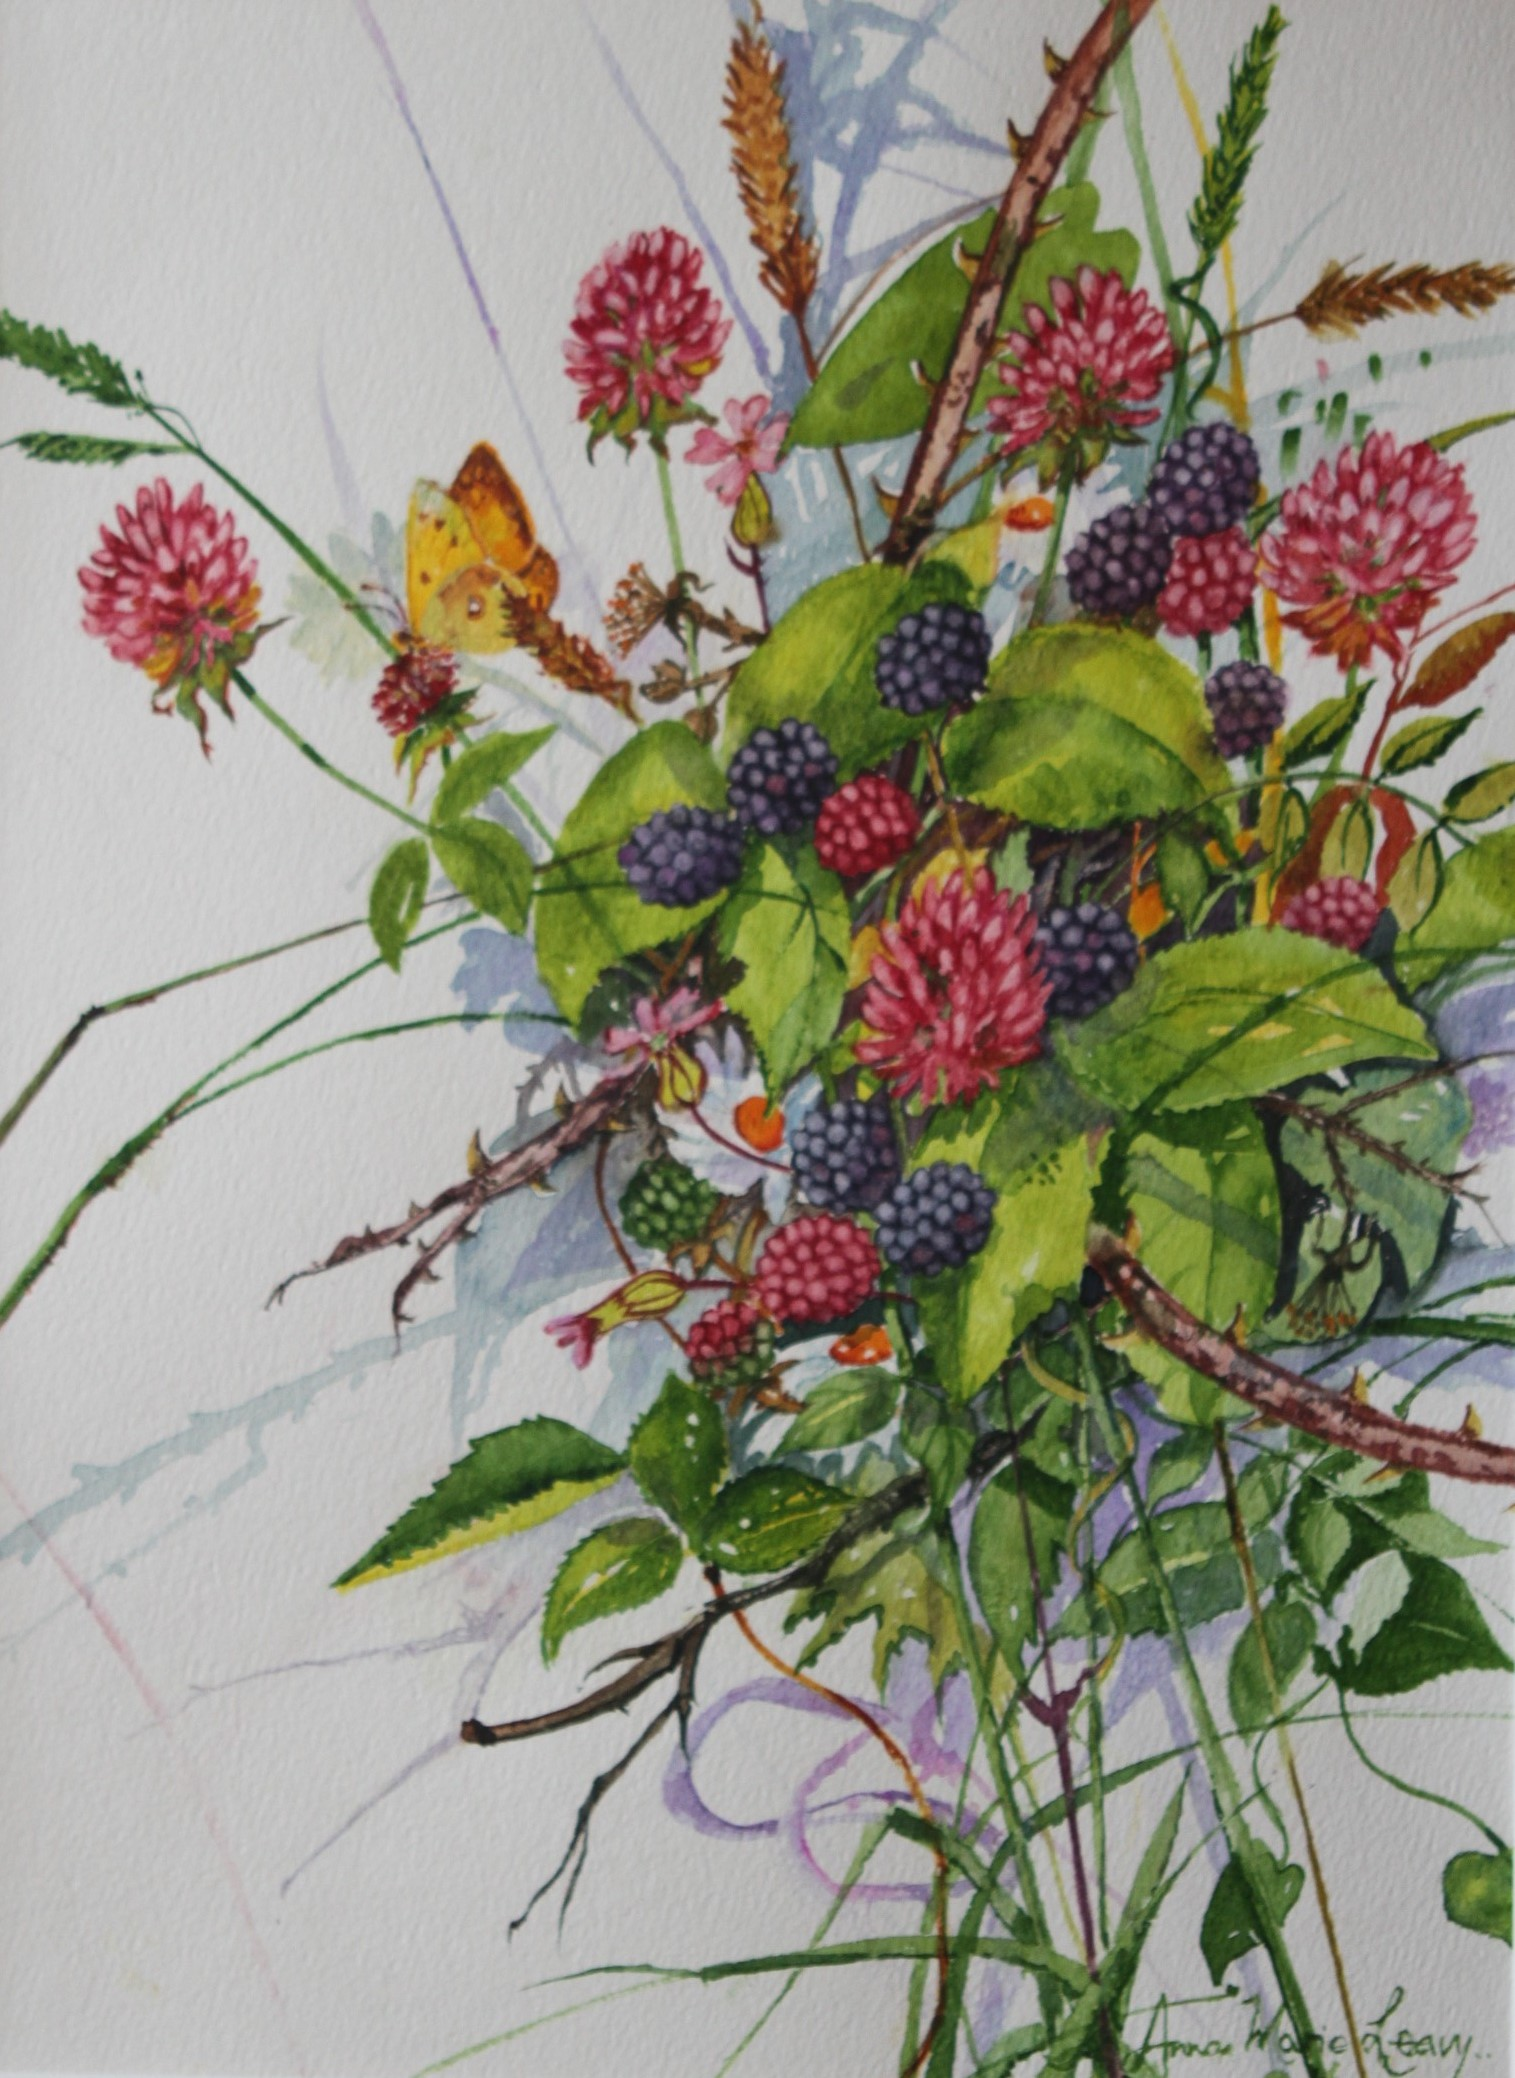 Blackberries in the Hedgerow, Watercolour by Anna Marie Leavy